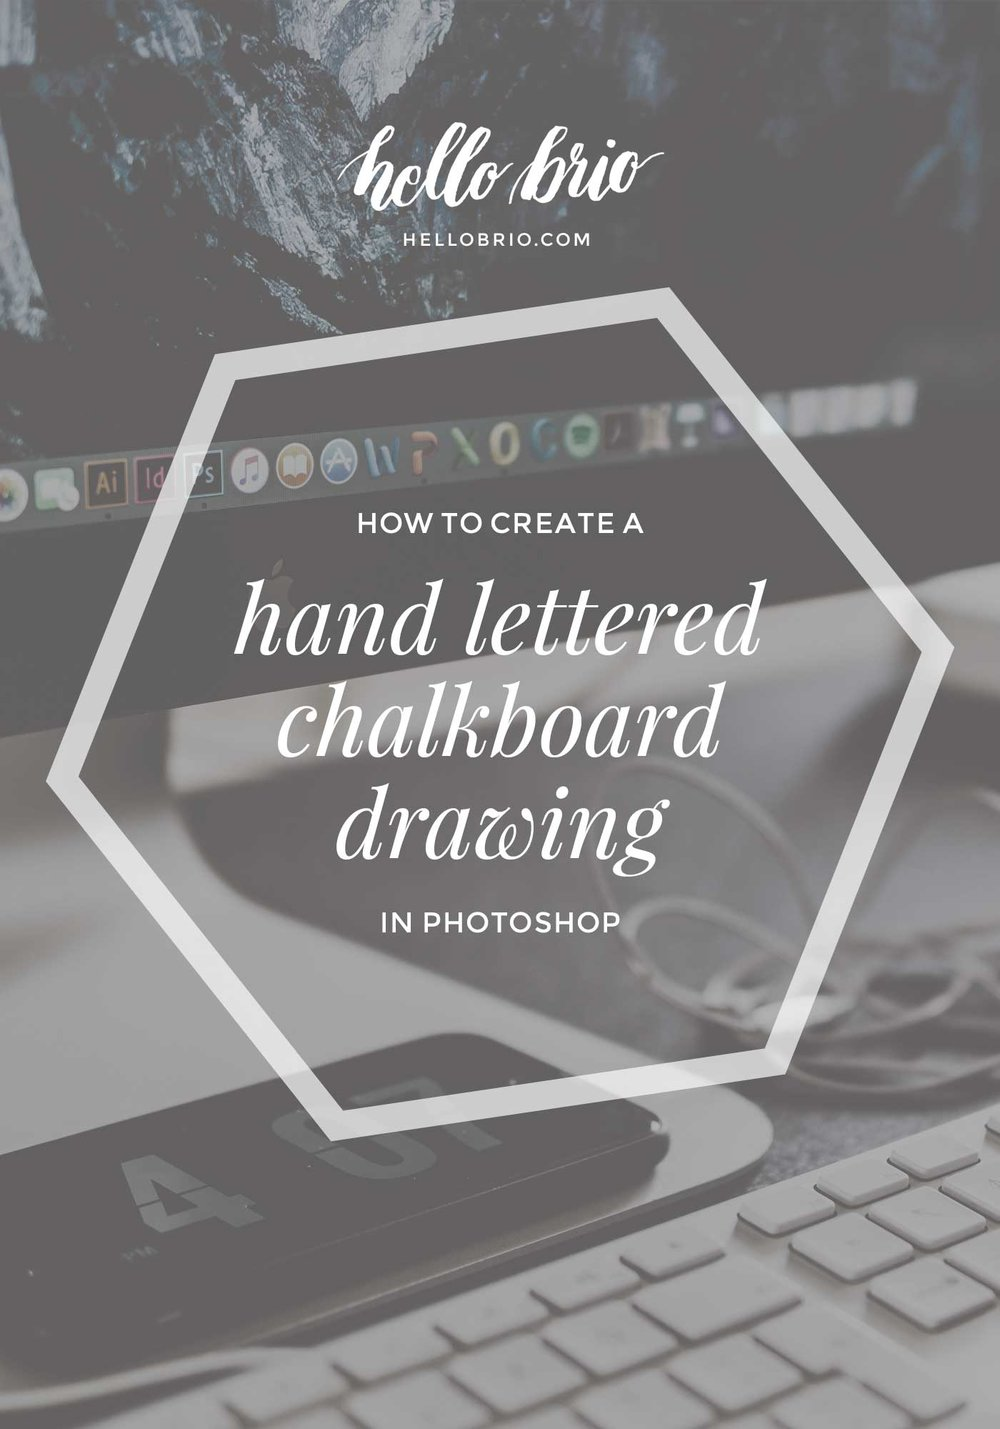 How to create a hand lettered chalkboard drawing in Photoshop